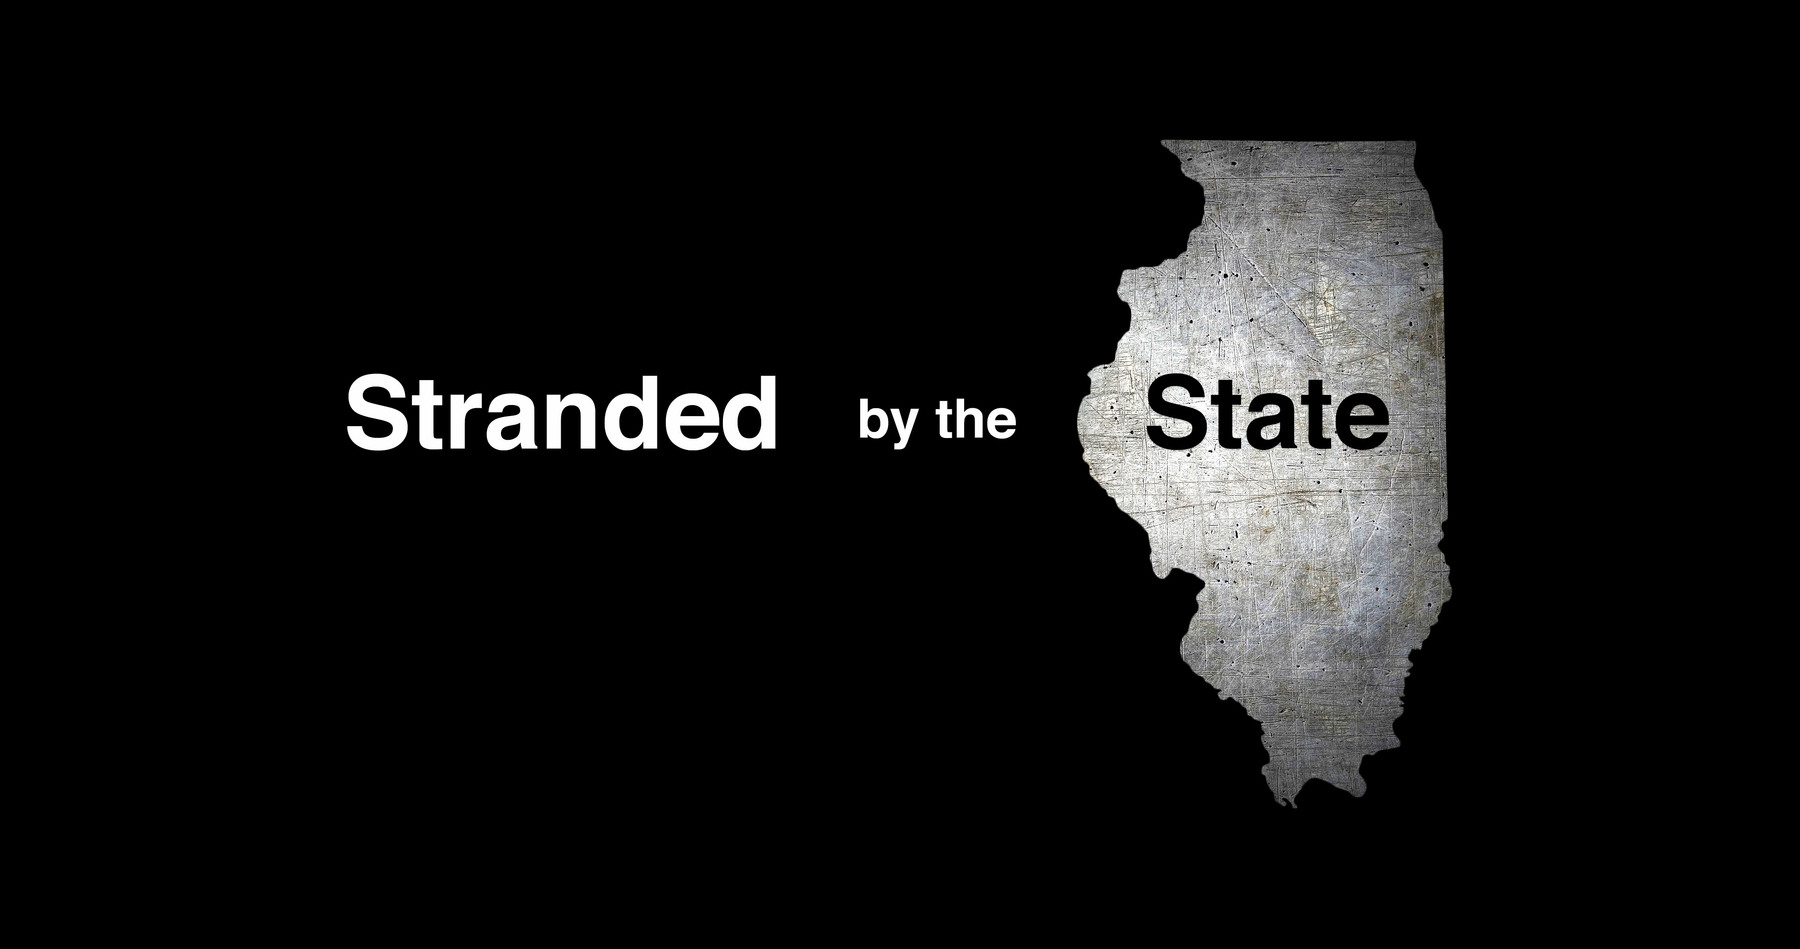 Stranded by the State text appears next to an image of the state of Illinois